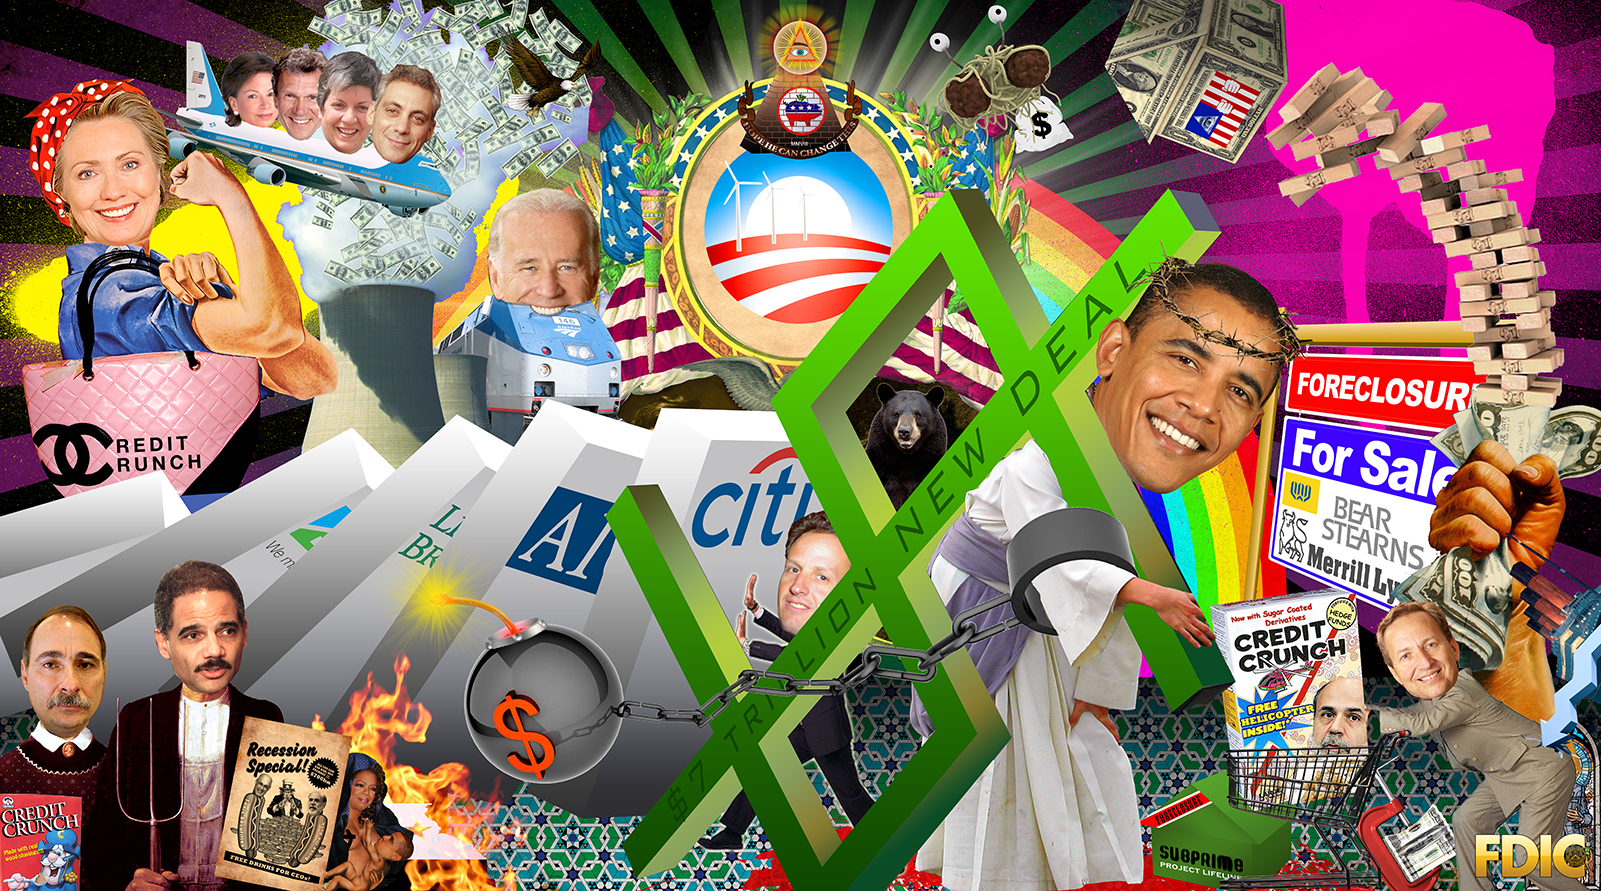 A political collage including an image of Barak Obama as Jesus Christ chained to a bomb, Hilary Clinton as Rosie the Riveter, and Joe Biden's head on the front of the train.